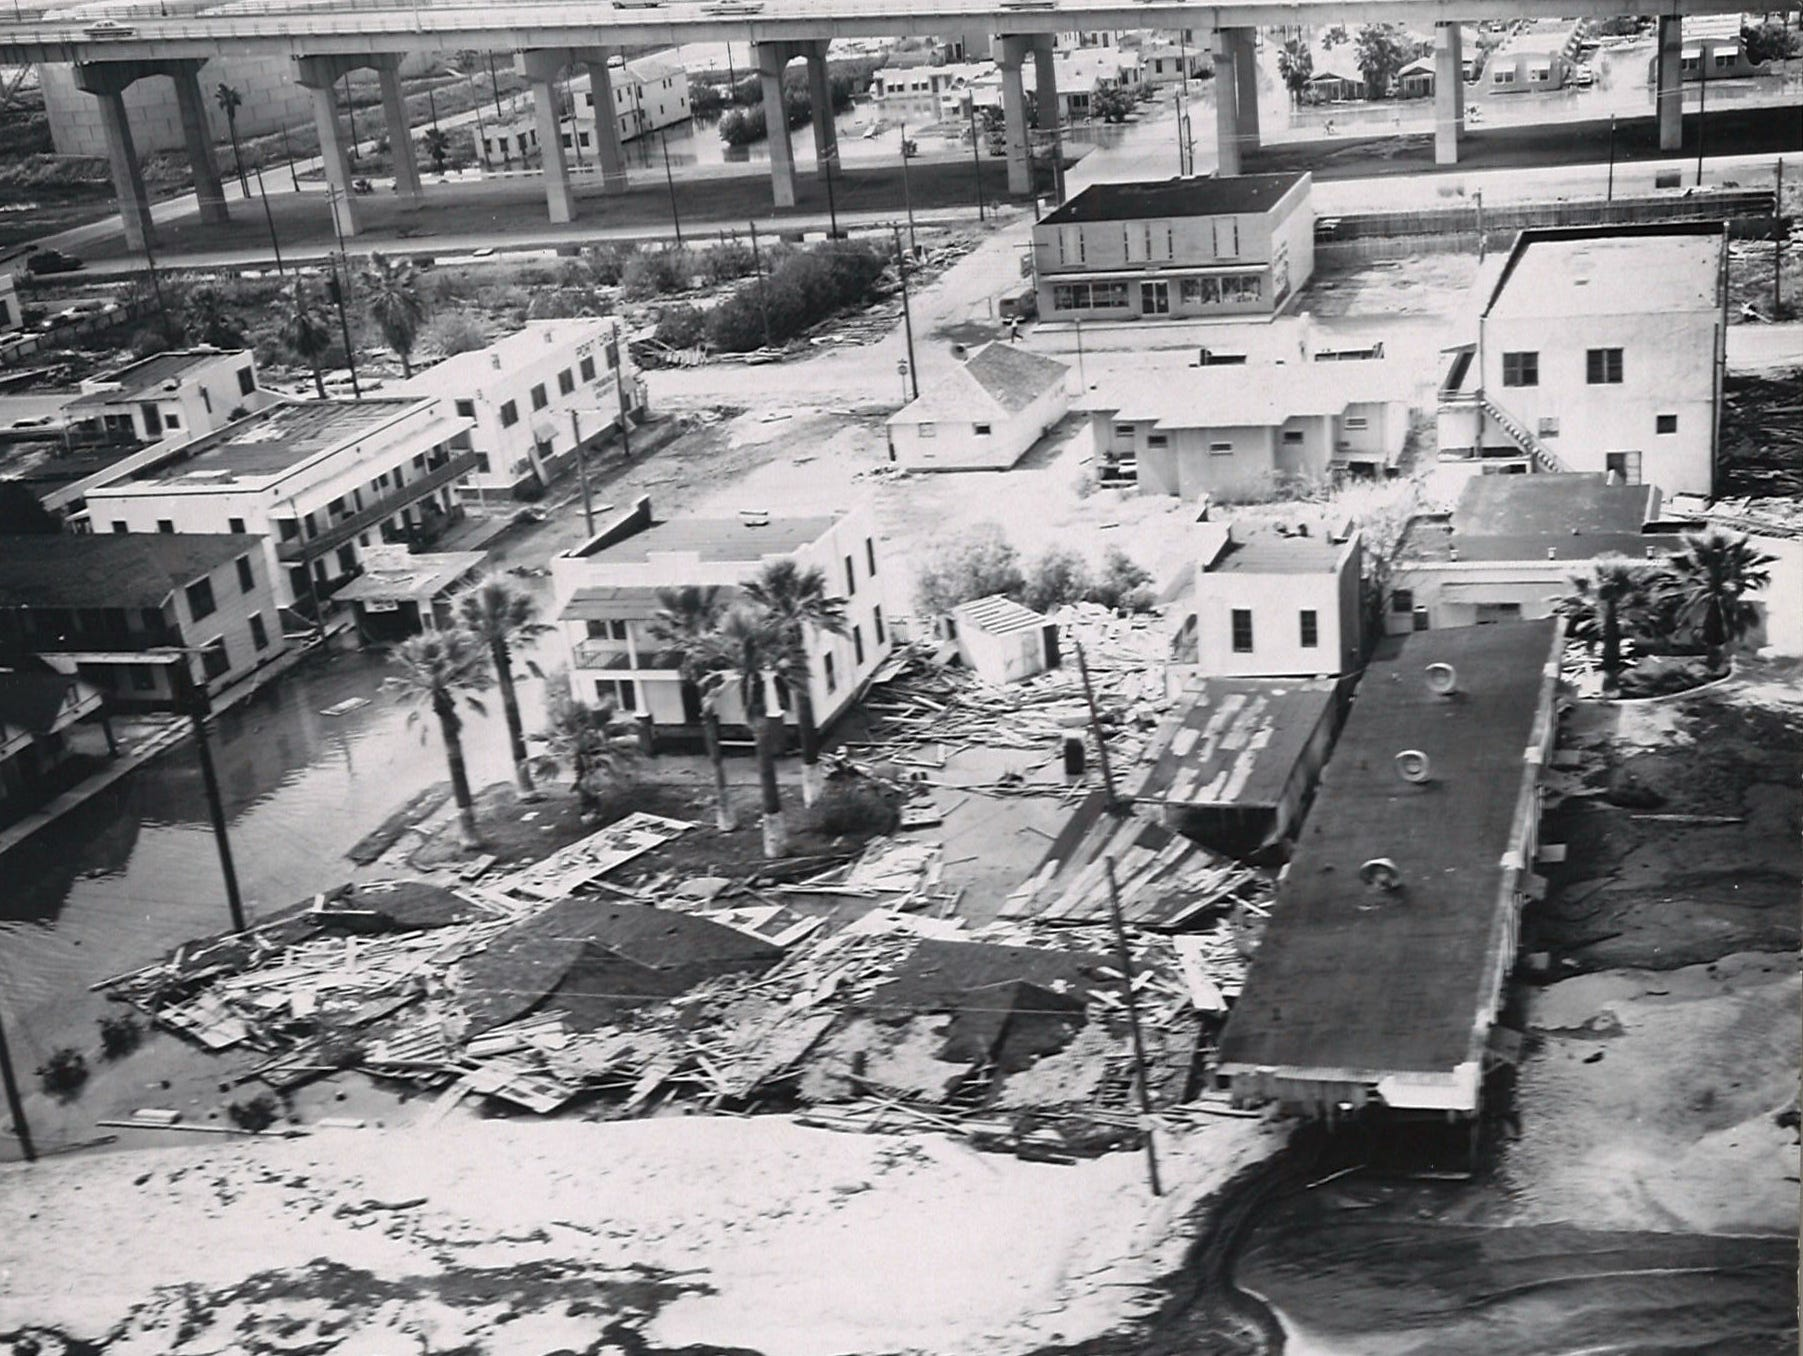 Corpus Christi's North Beach suffered damage and flooding from Hurricane Beulah in Septemner 1967.